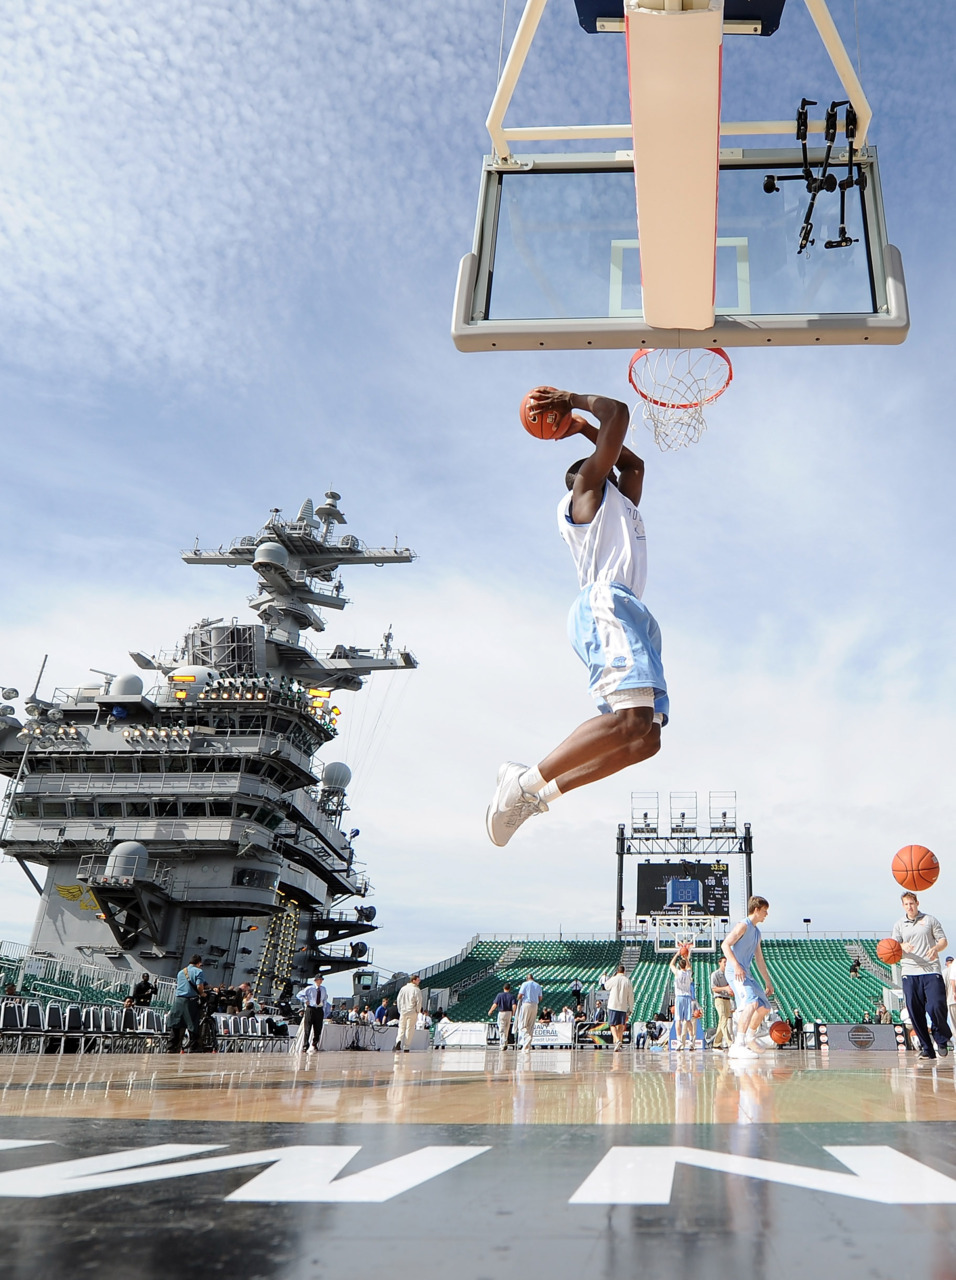 In the navyHarrison Barnes of the North Carolina Tar Heels goes in for a dunk in practice during the Quicken Loans Carrier Classic on board the USS Carl Vinson on November 11, 2011 in Coronado, California. The Tar Heels play the Michigan State Spartans aboard the U.S. Navy aircraft carrier Friday night. Photo: Harry How/Getty Images